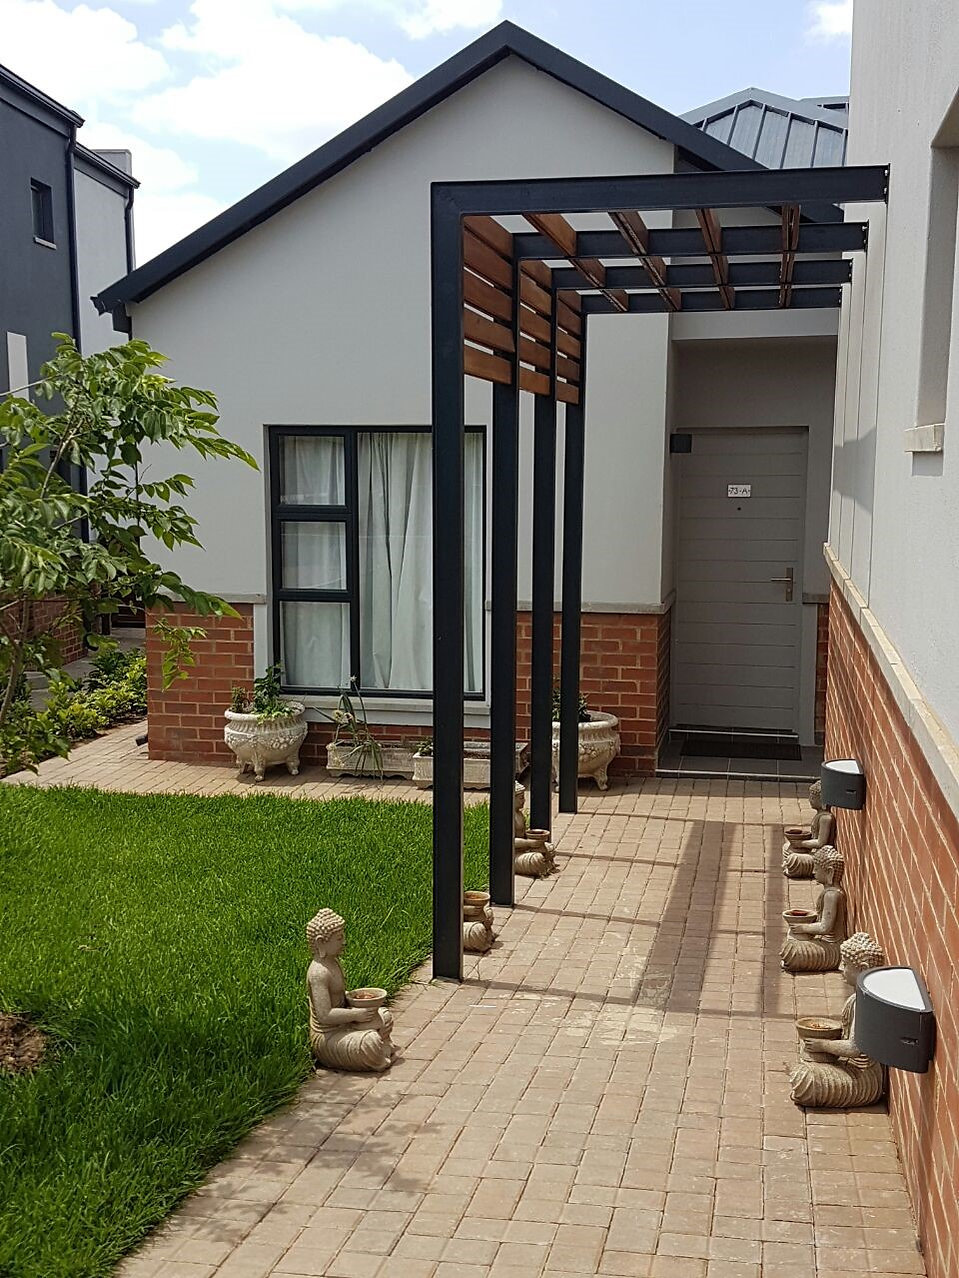 Carlswald Luxury Apartments is a housimg estate development designed by Hub Architects and is located in Midrand, Johannesburg, South Africa